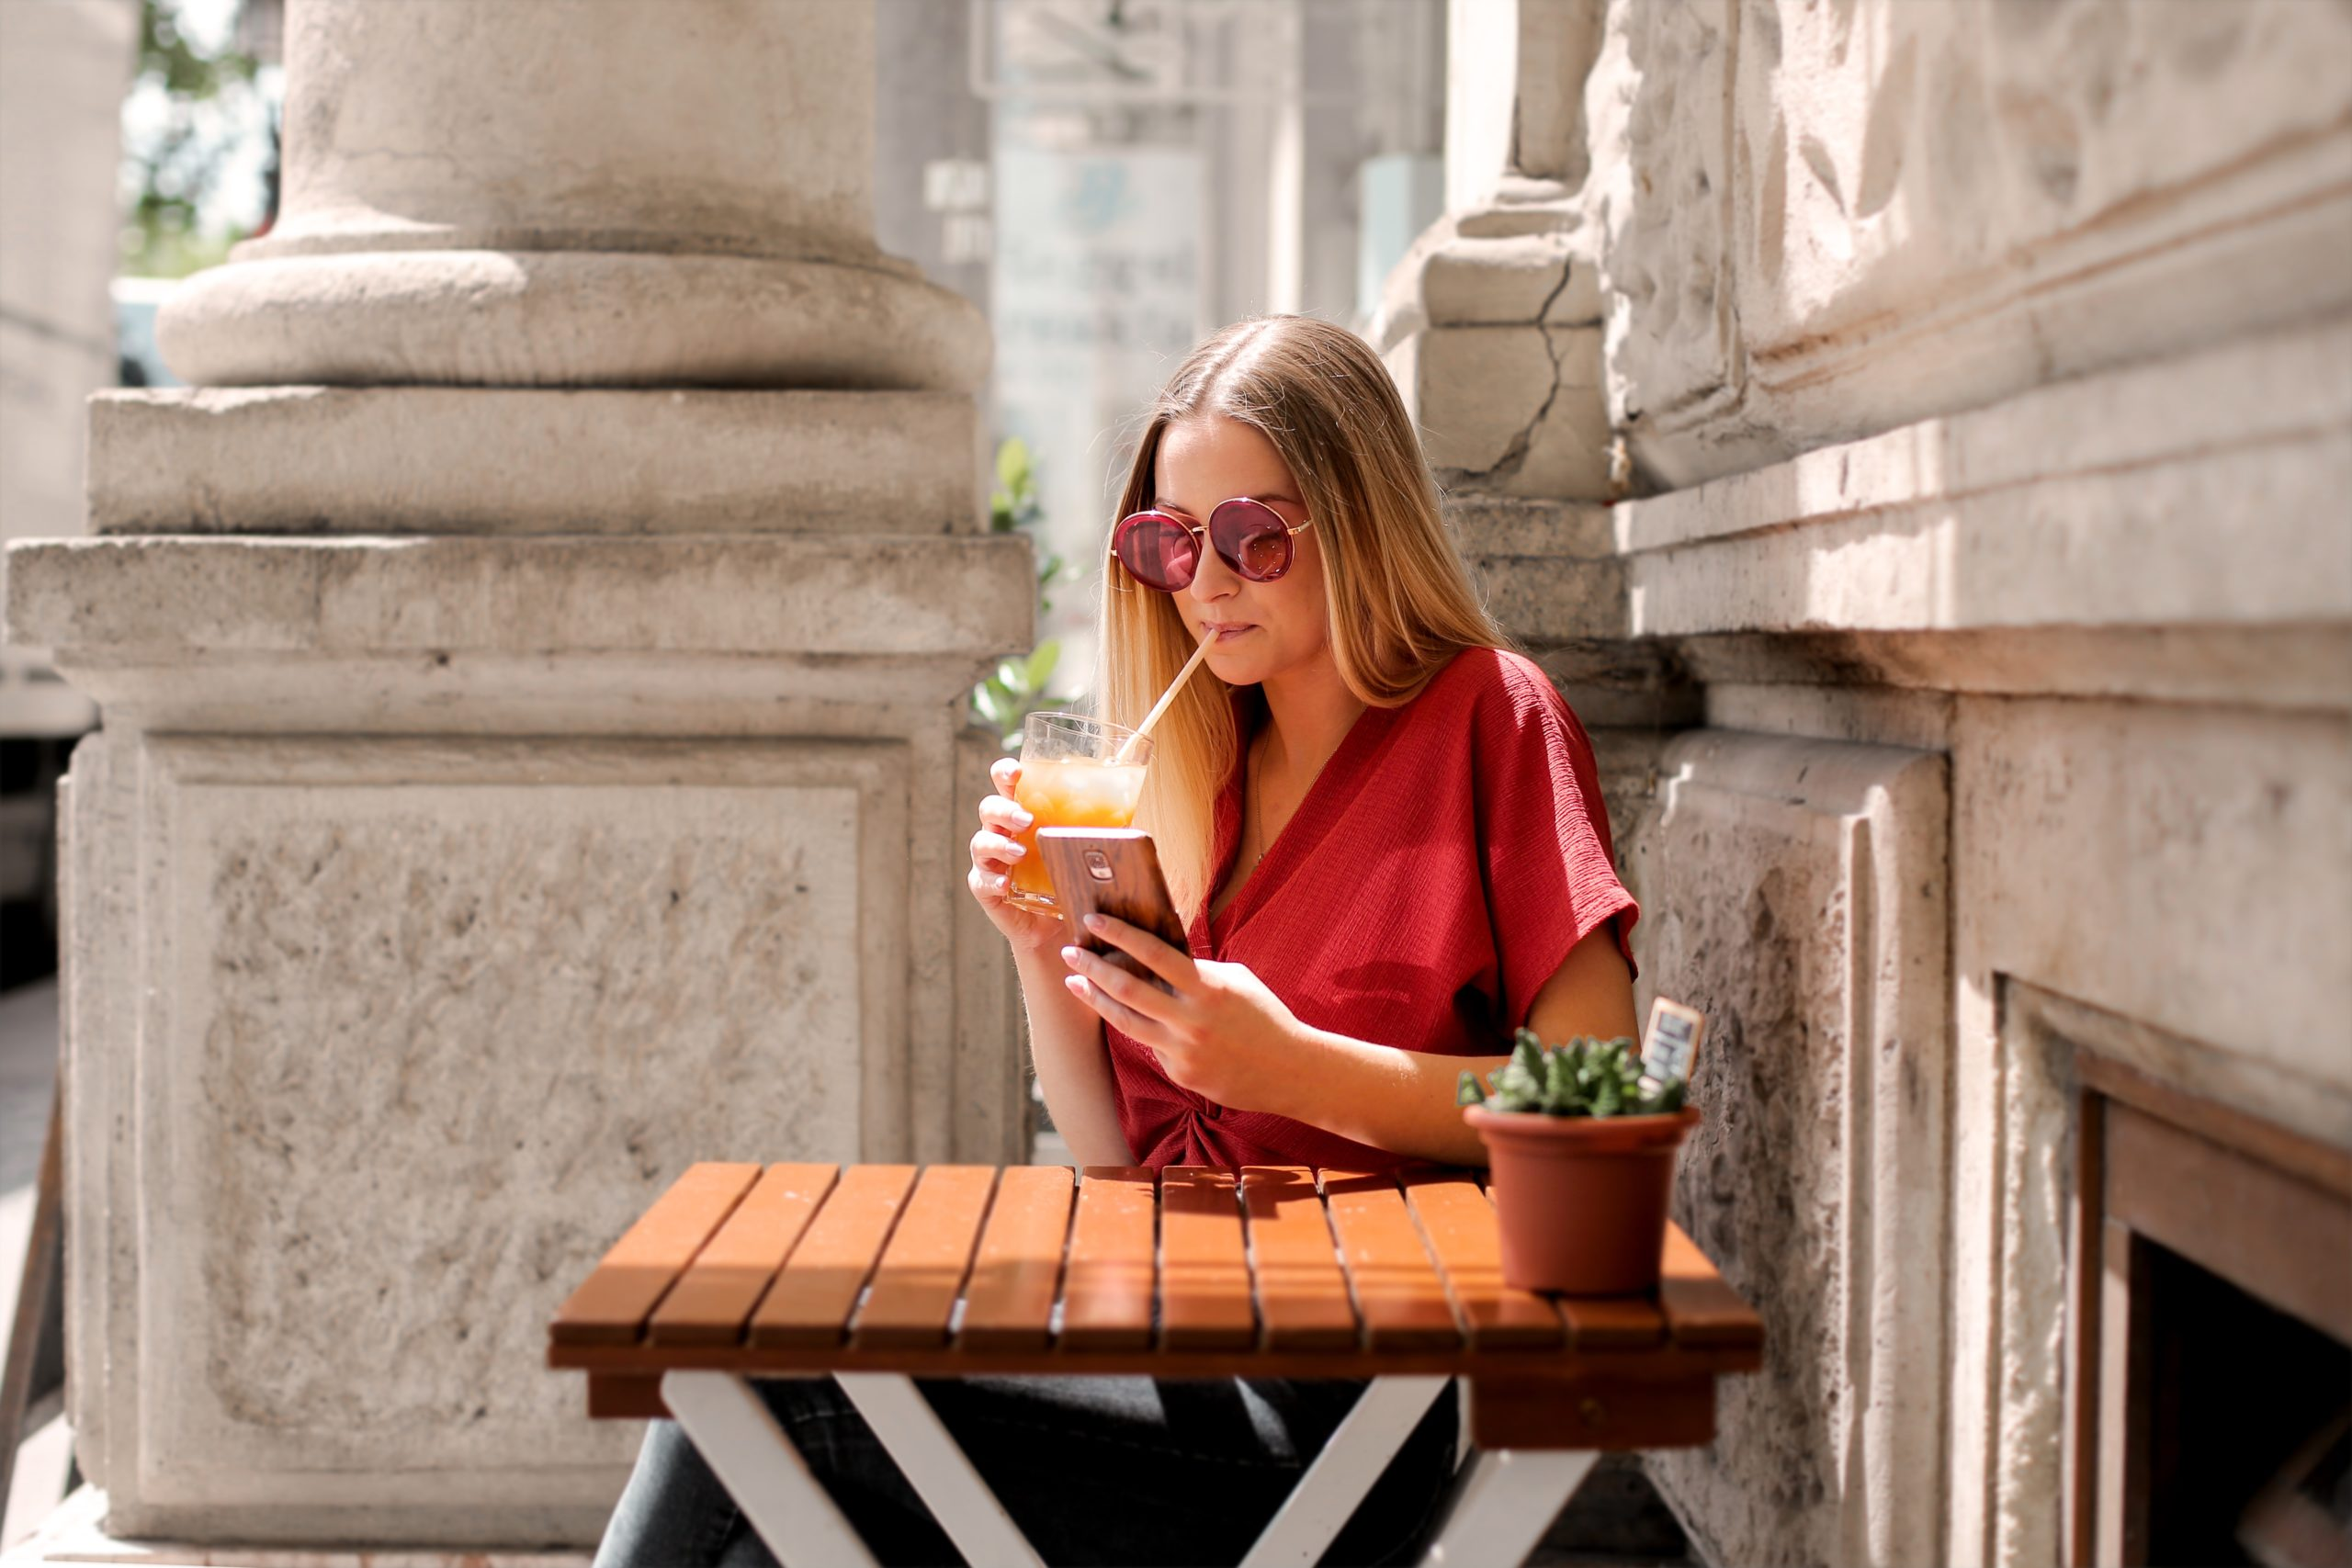 woman-drinking-while-holding-smartphone-3768115